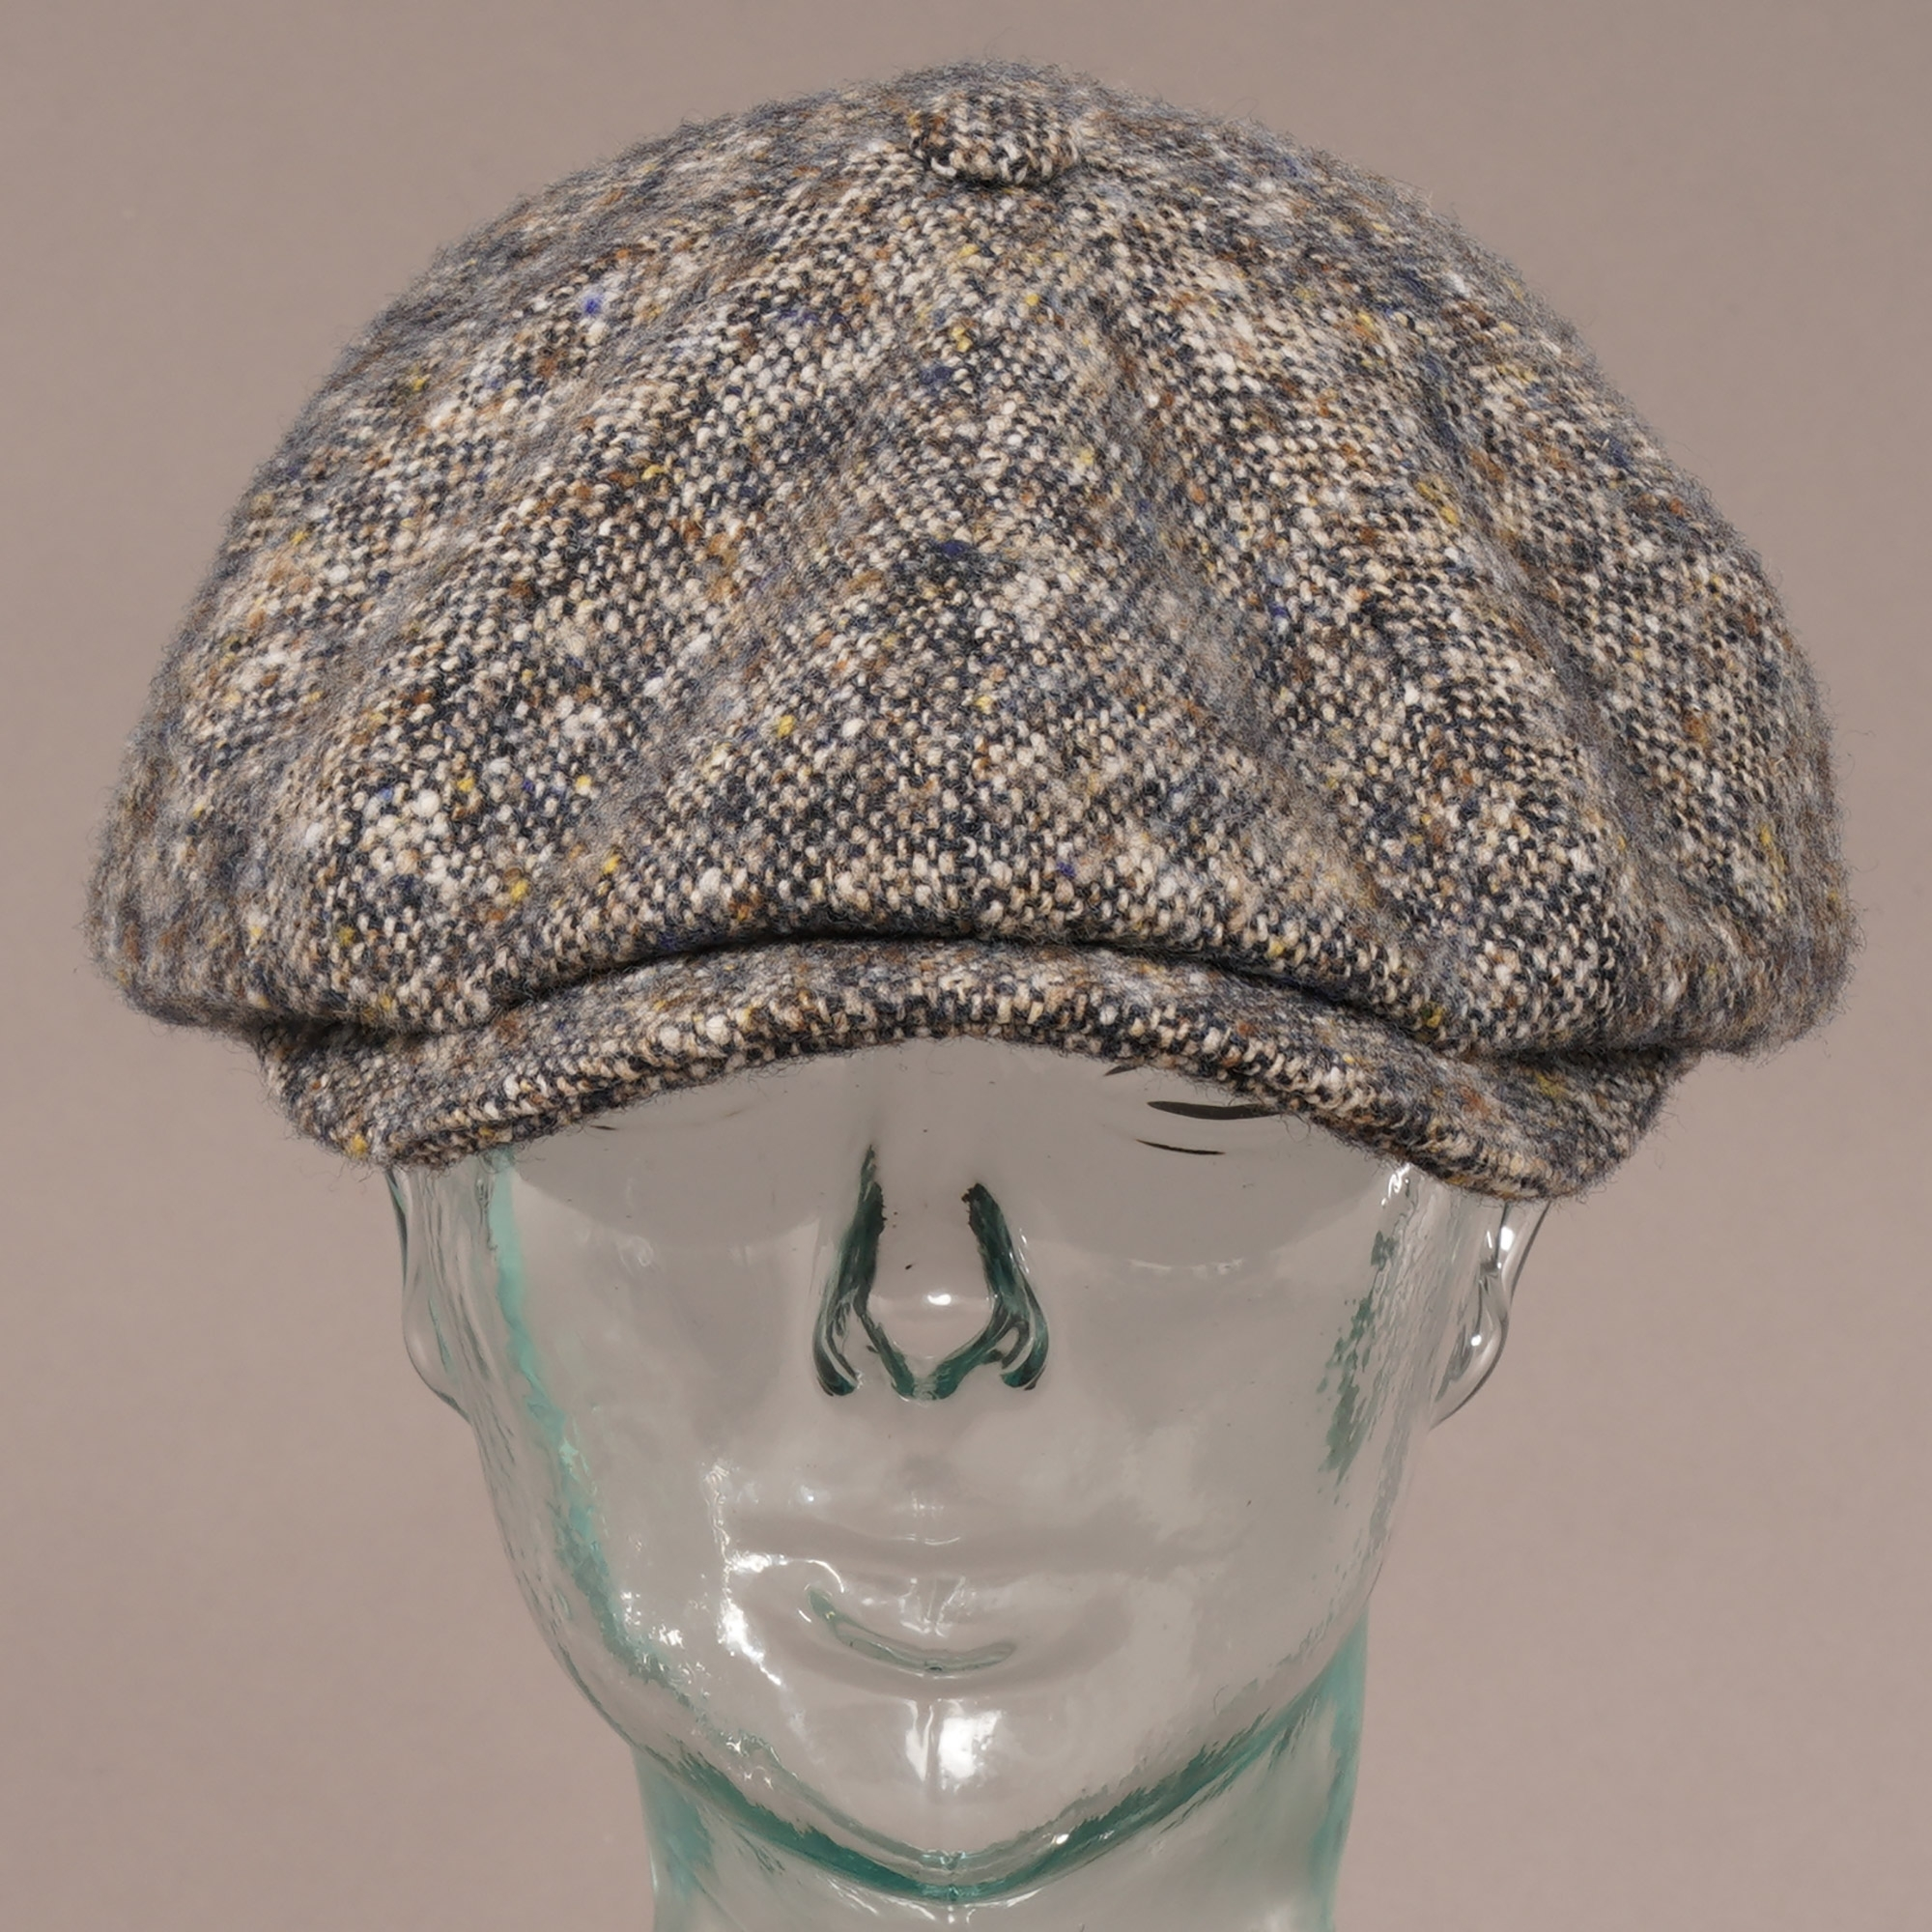 Stetson Hats Hatteras Donegal Wool Newsboy Cap - Image Of Hat 6c56bfff857d